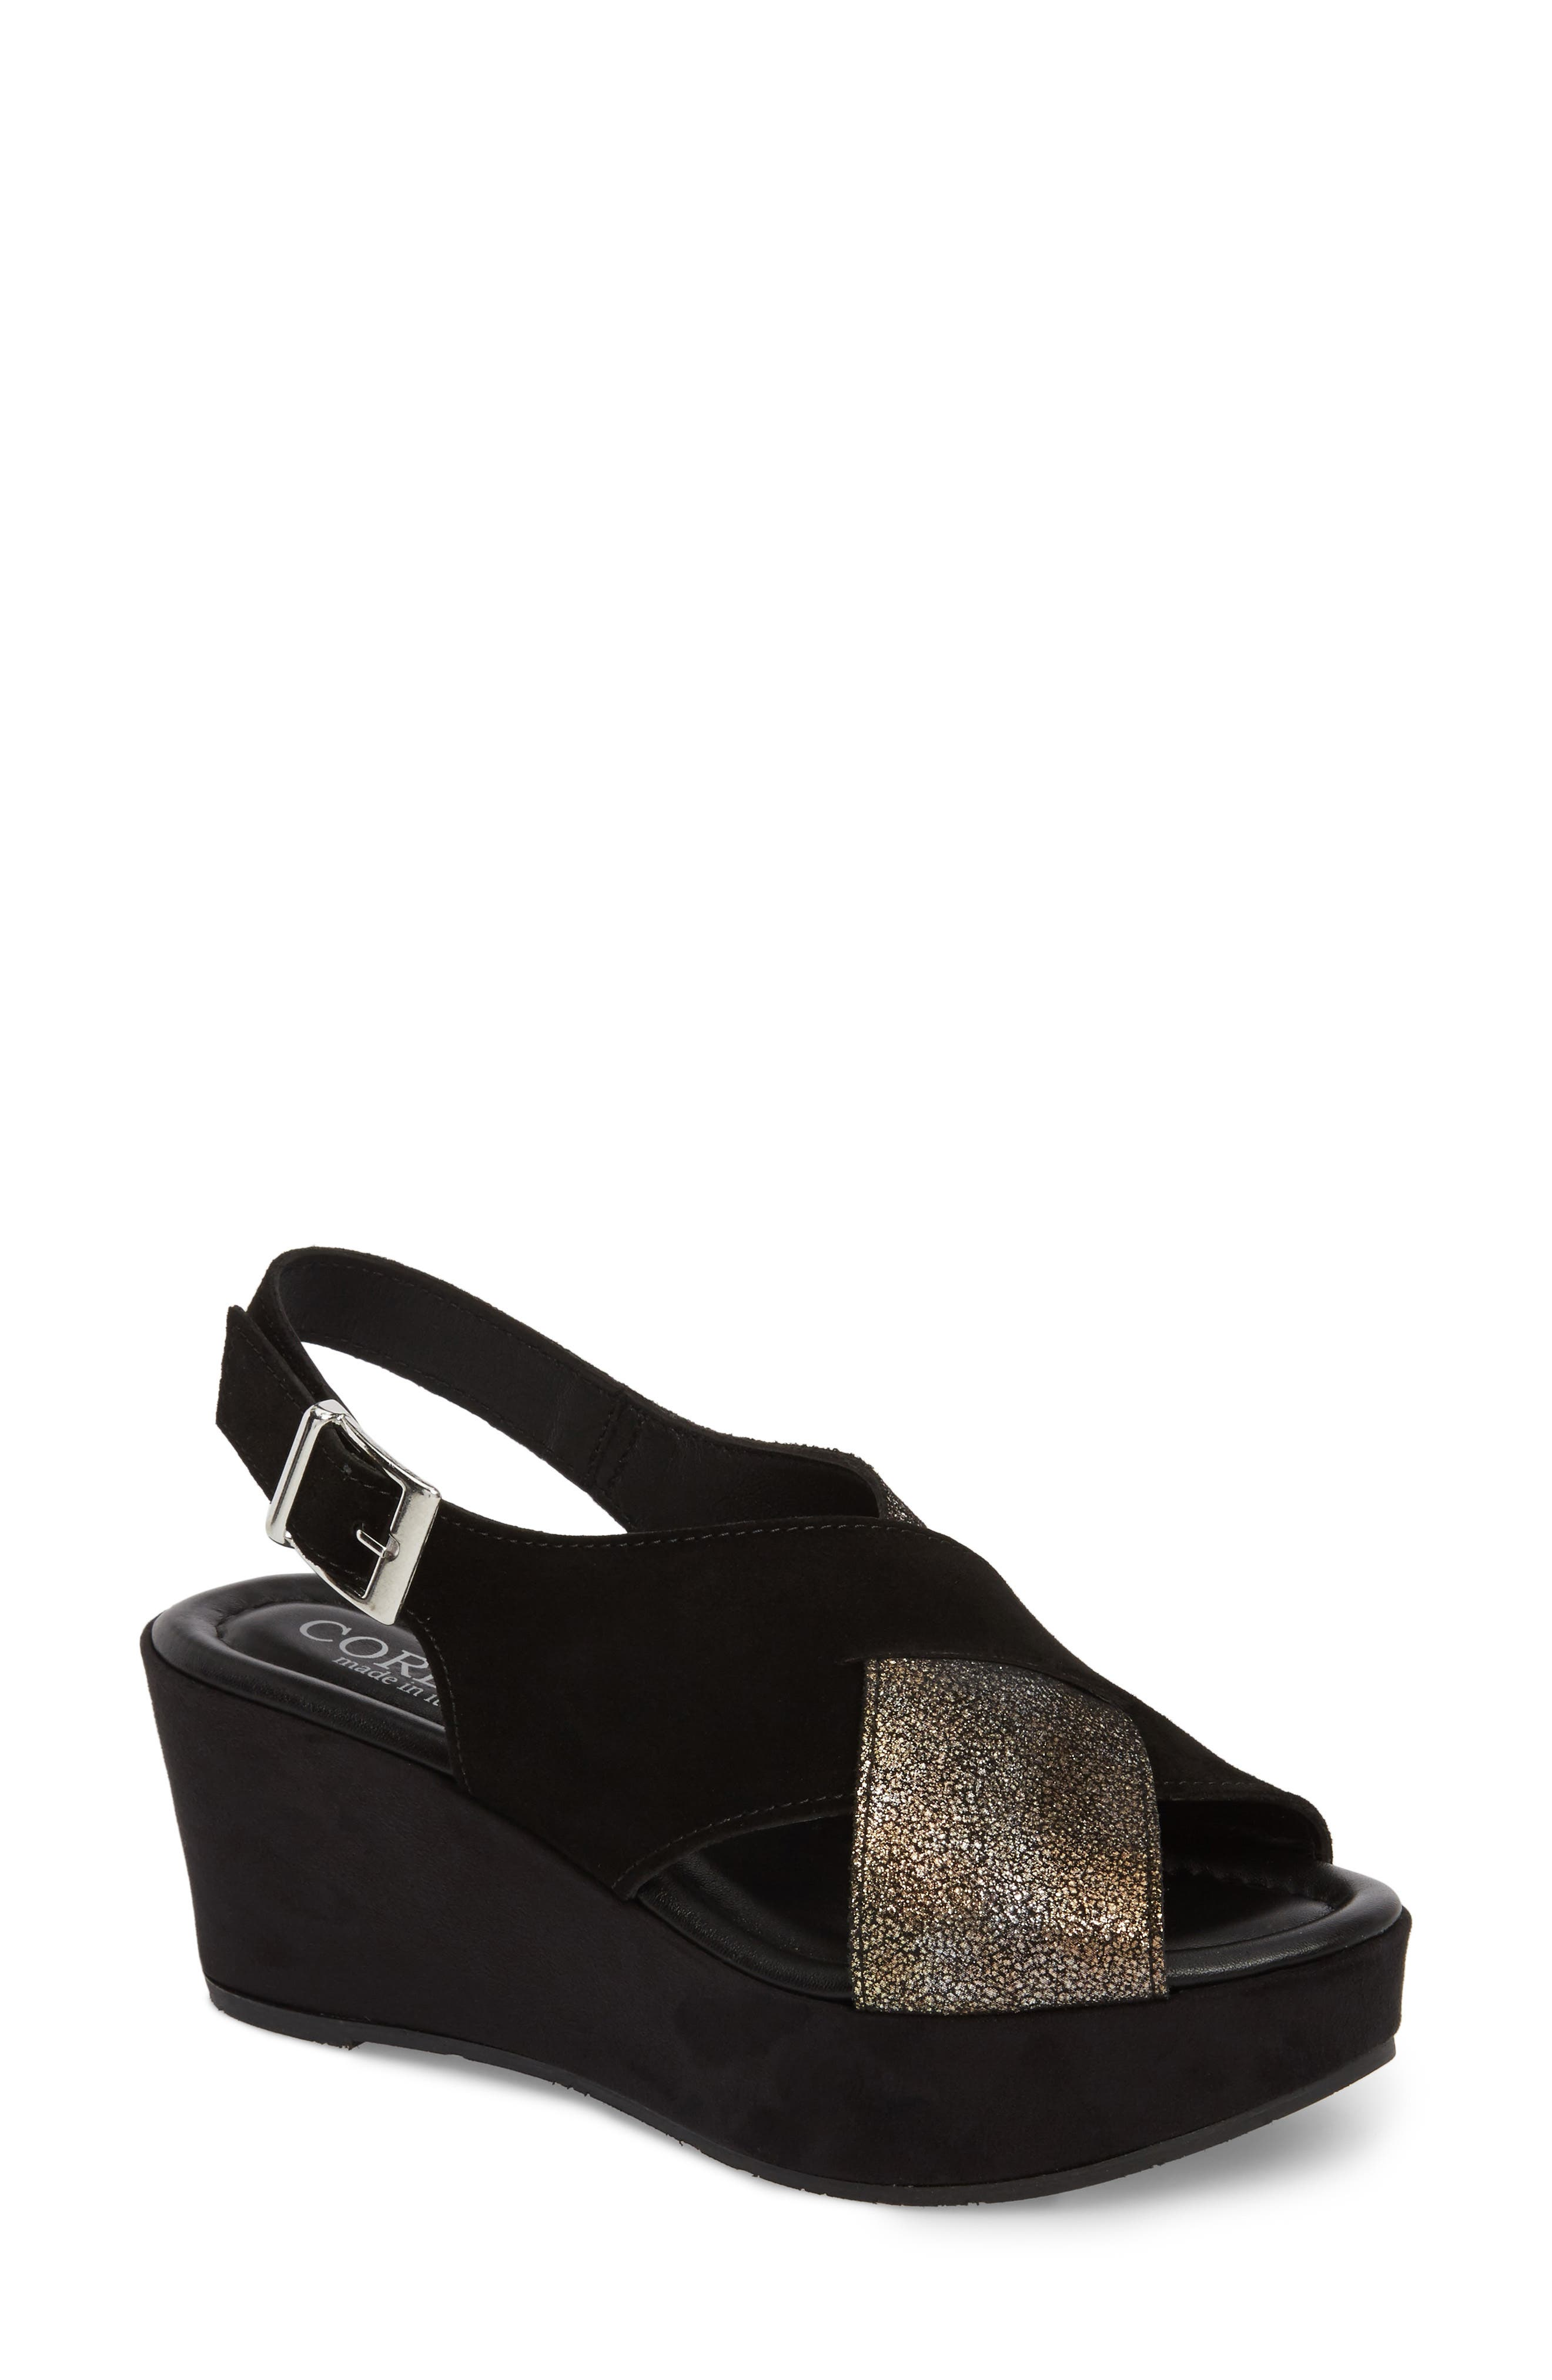 Cleary Wedge Sandal,                         Main,                         color, BLACK/ PEWTER SUEDE